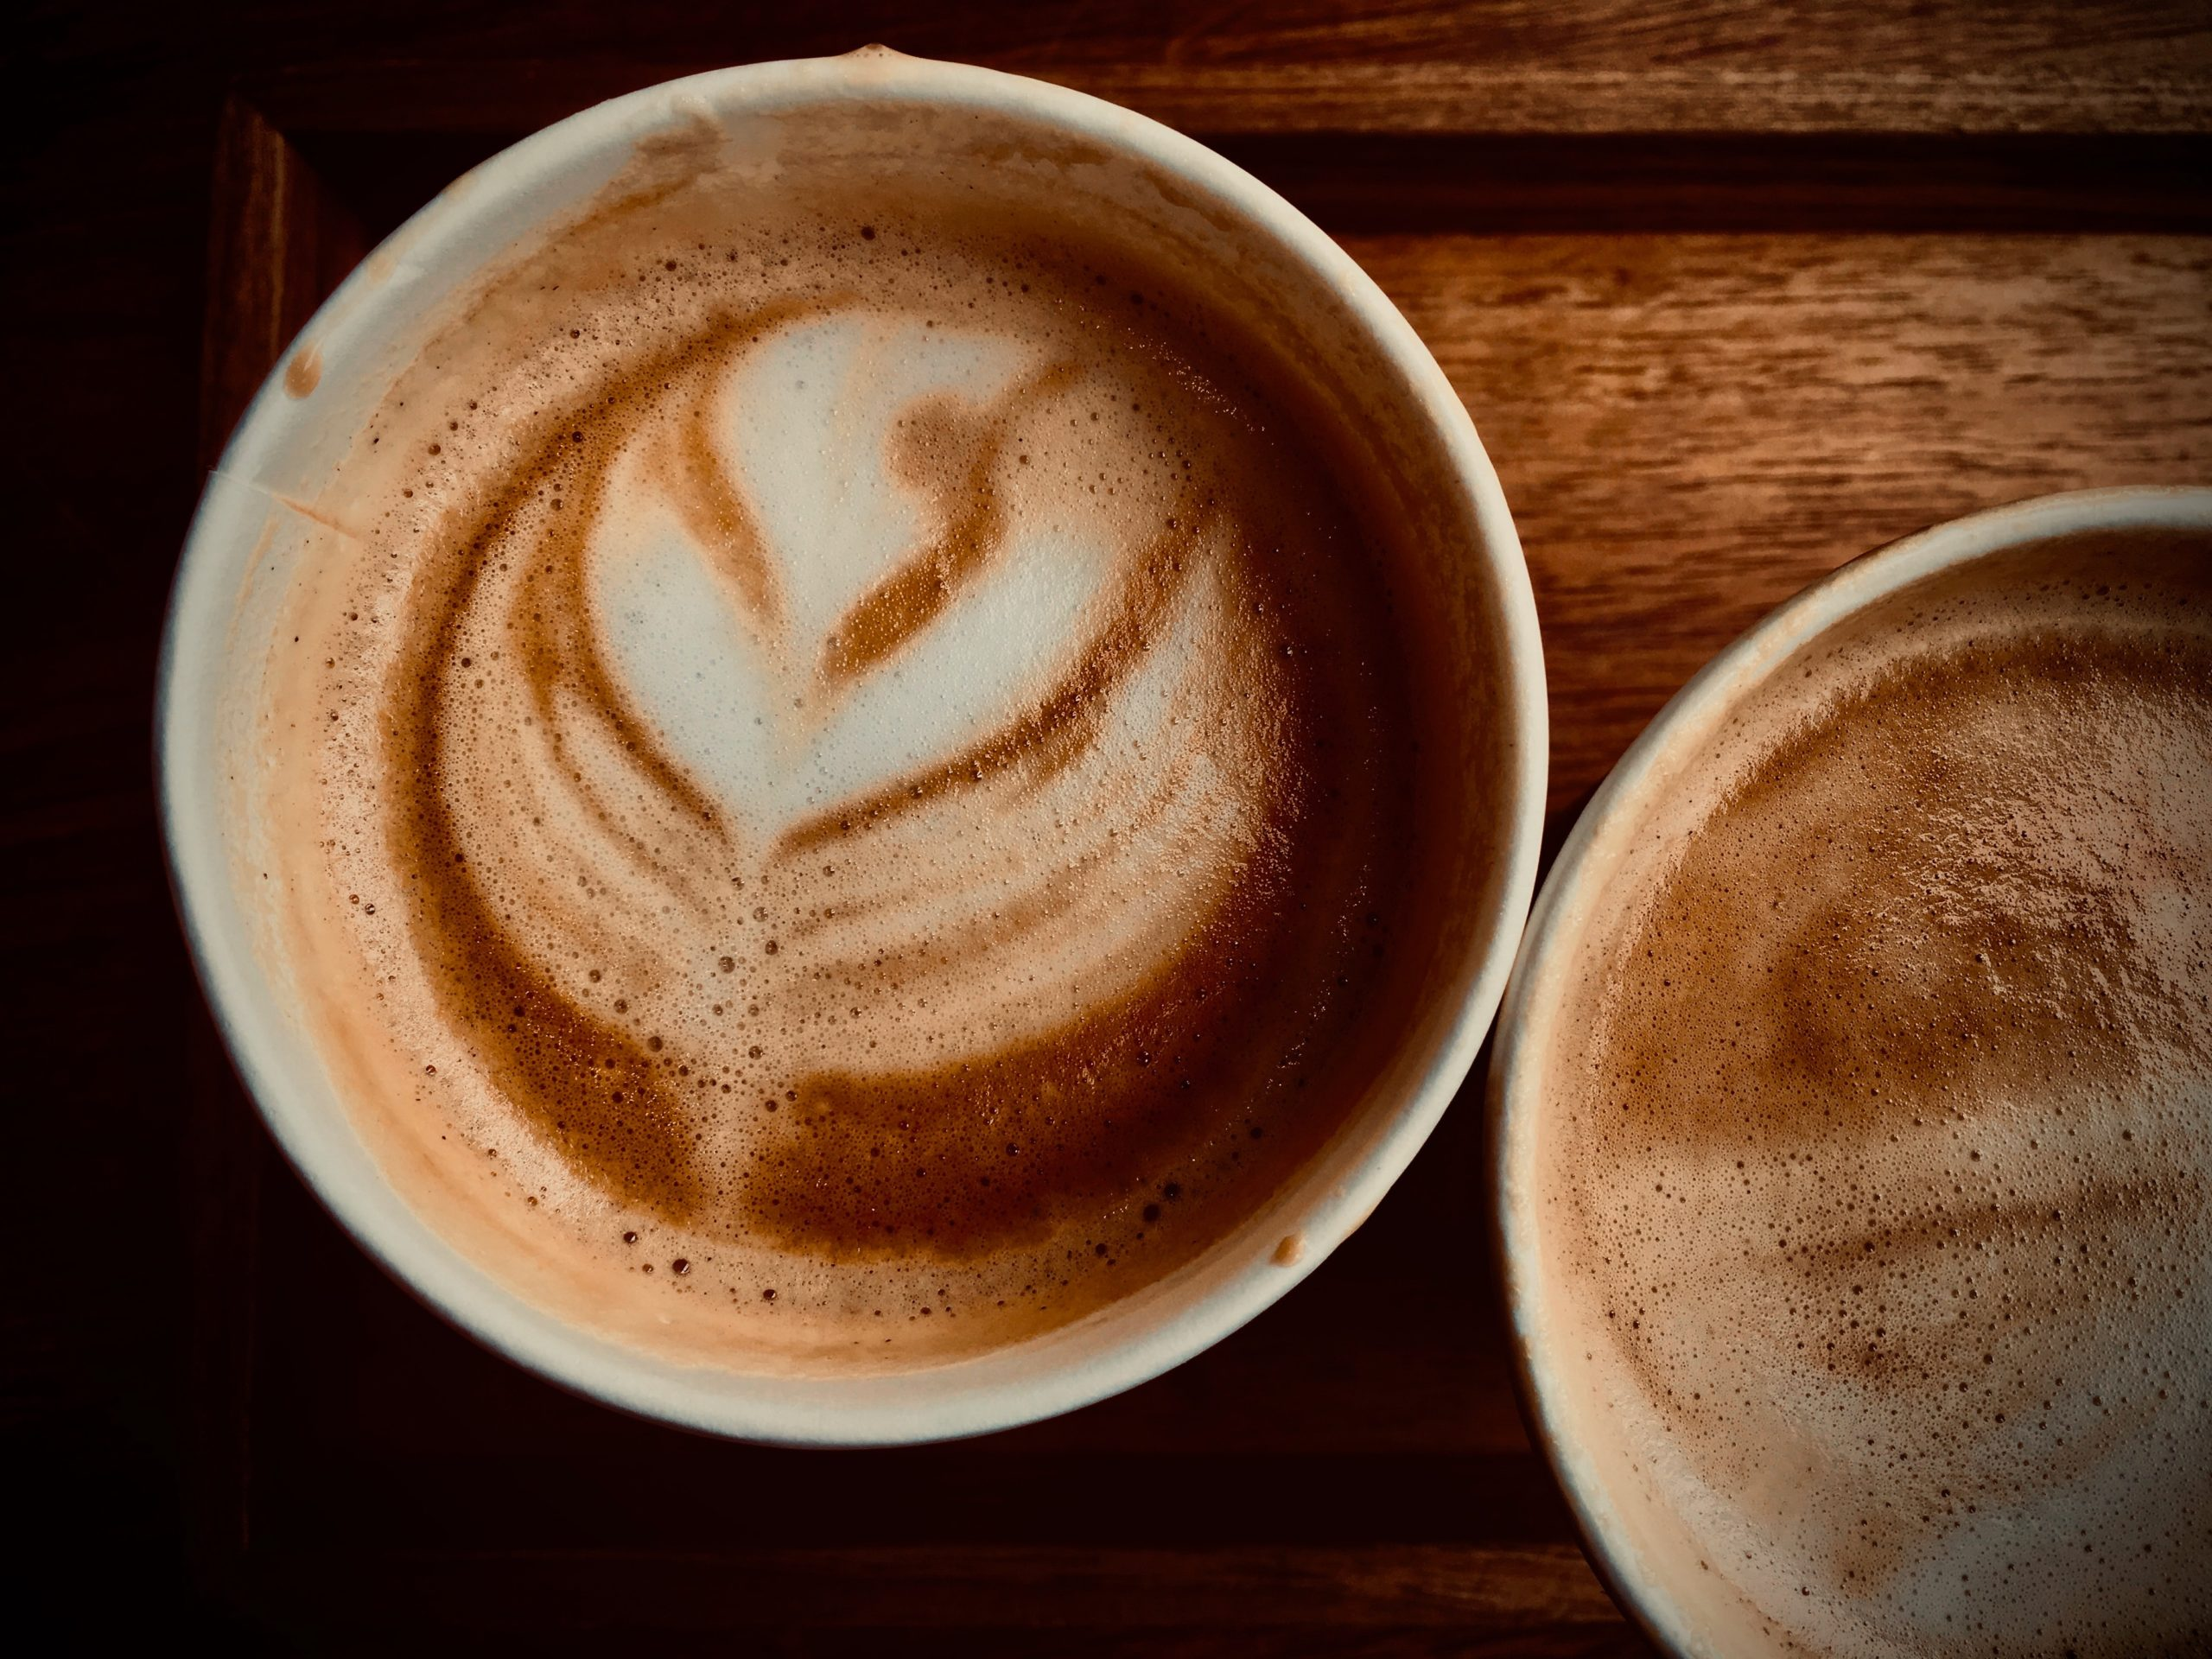 Types of Coffee That Have The Most Caffeine Introduction